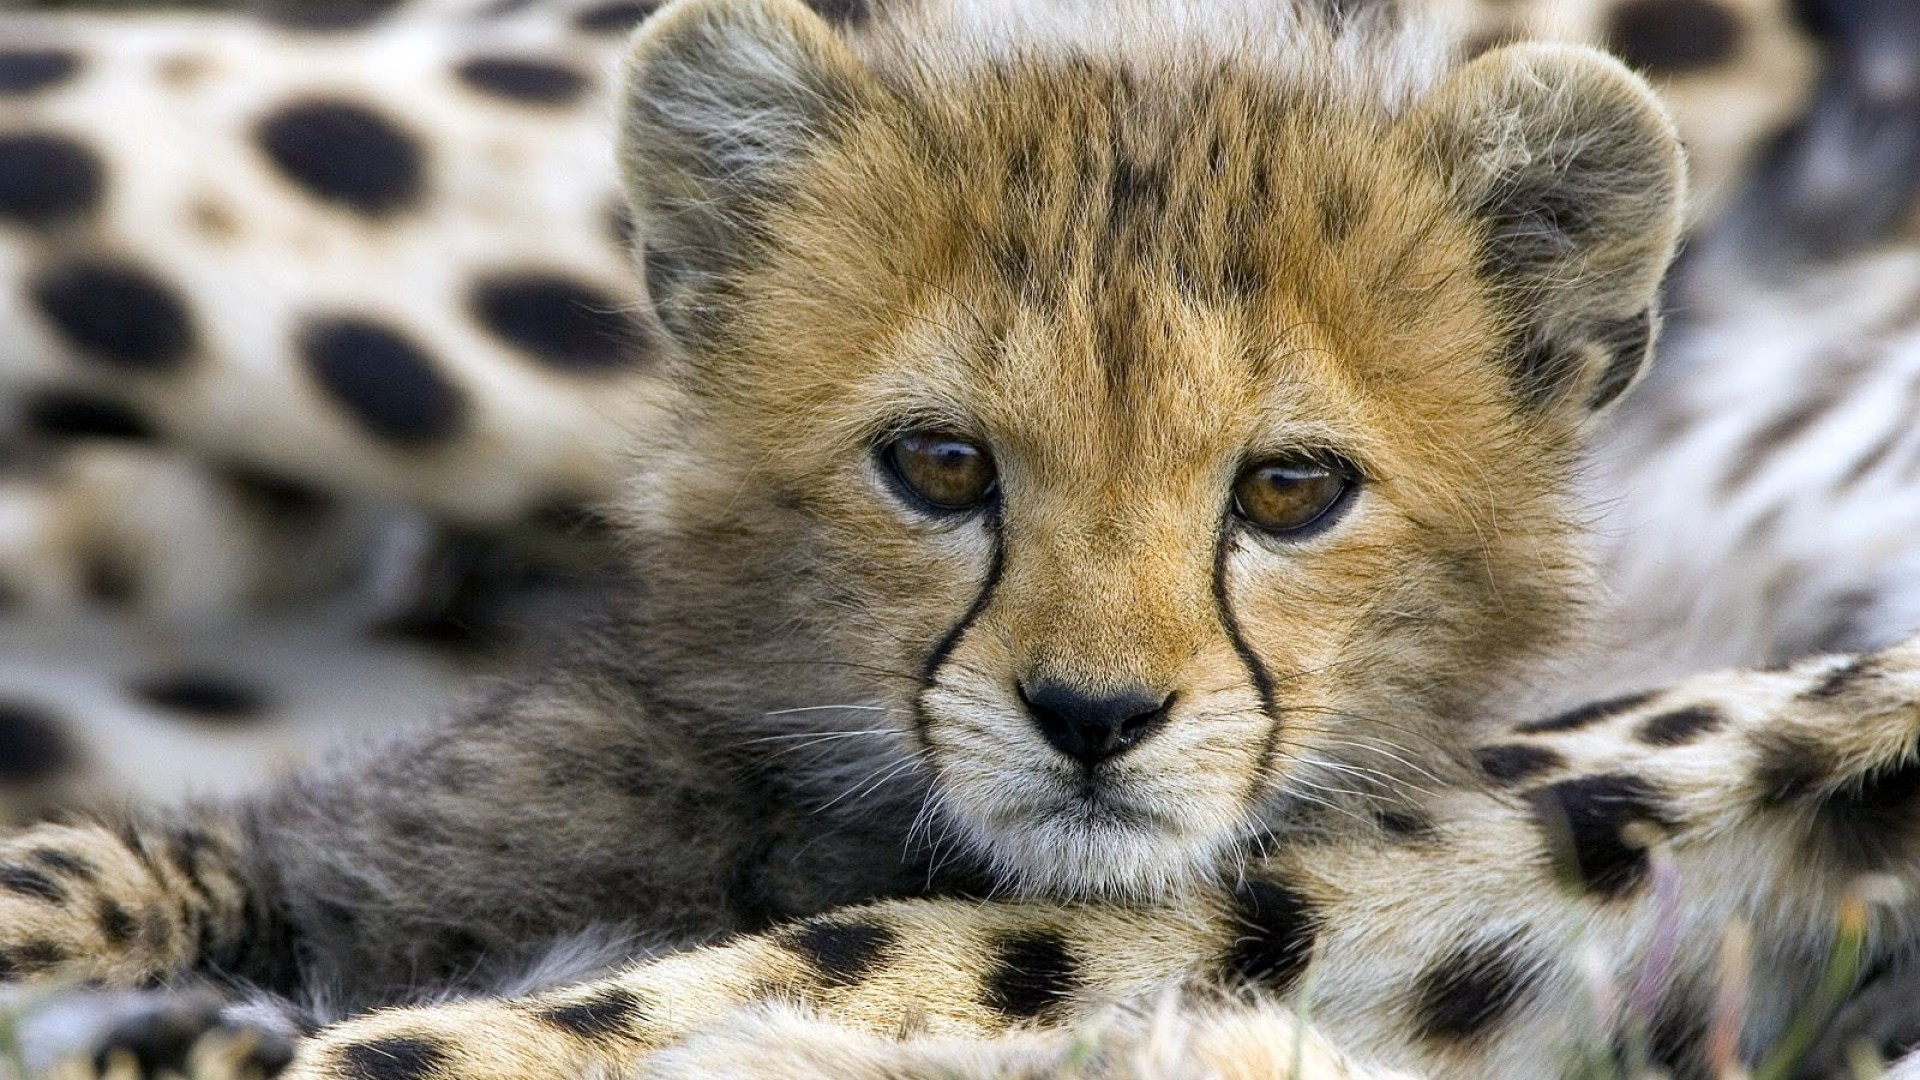 Cute Baby Cheetah Cubs Wallpaper 2